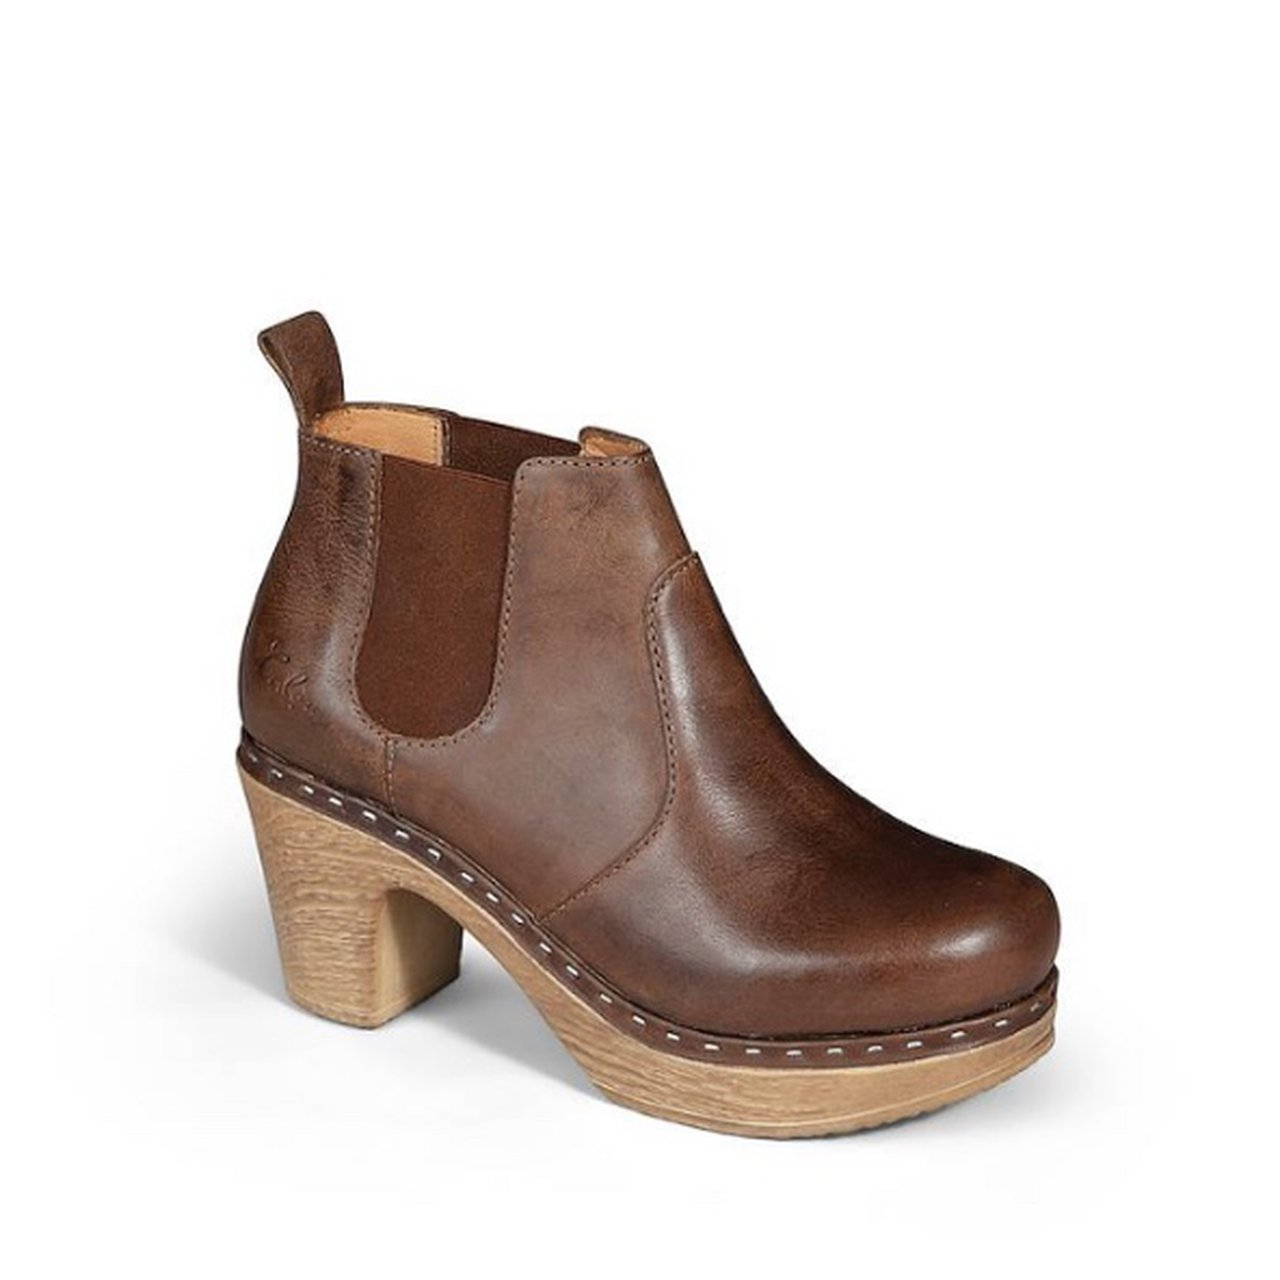 Leather Swedish Calou Clog Boots for Women Brown Leather Ankle Boots High Heel Doris Vintage Brown